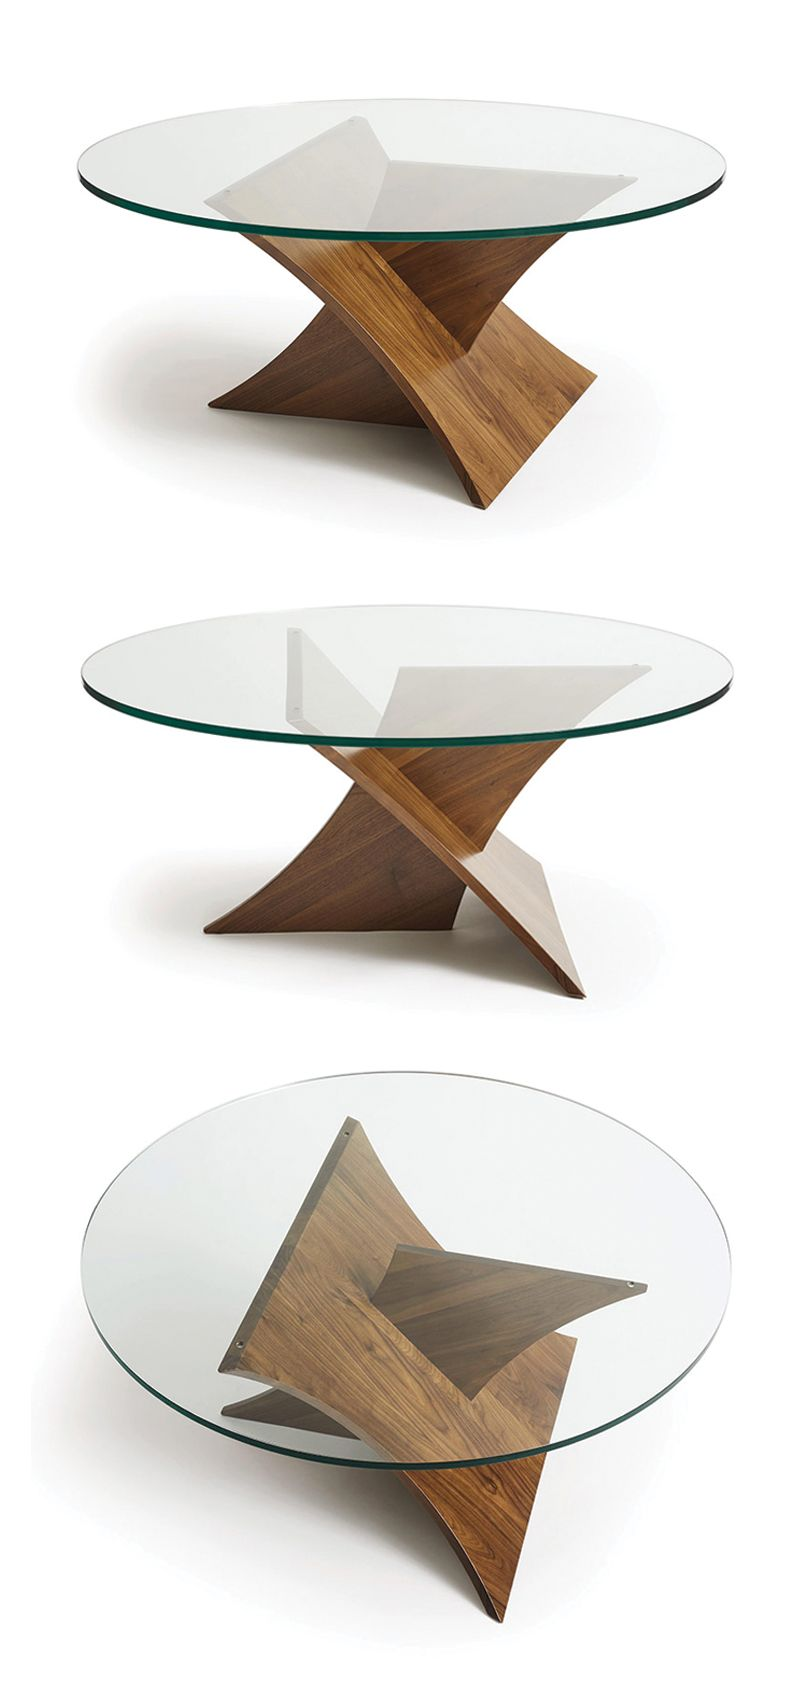 Planes Walnut Round Glass Top Coffee Table By Copeland Furniture Glass Top Coffee Table Coffee Table Design Decorating Coffee Tables [ 1706 x 800 Pixel ]